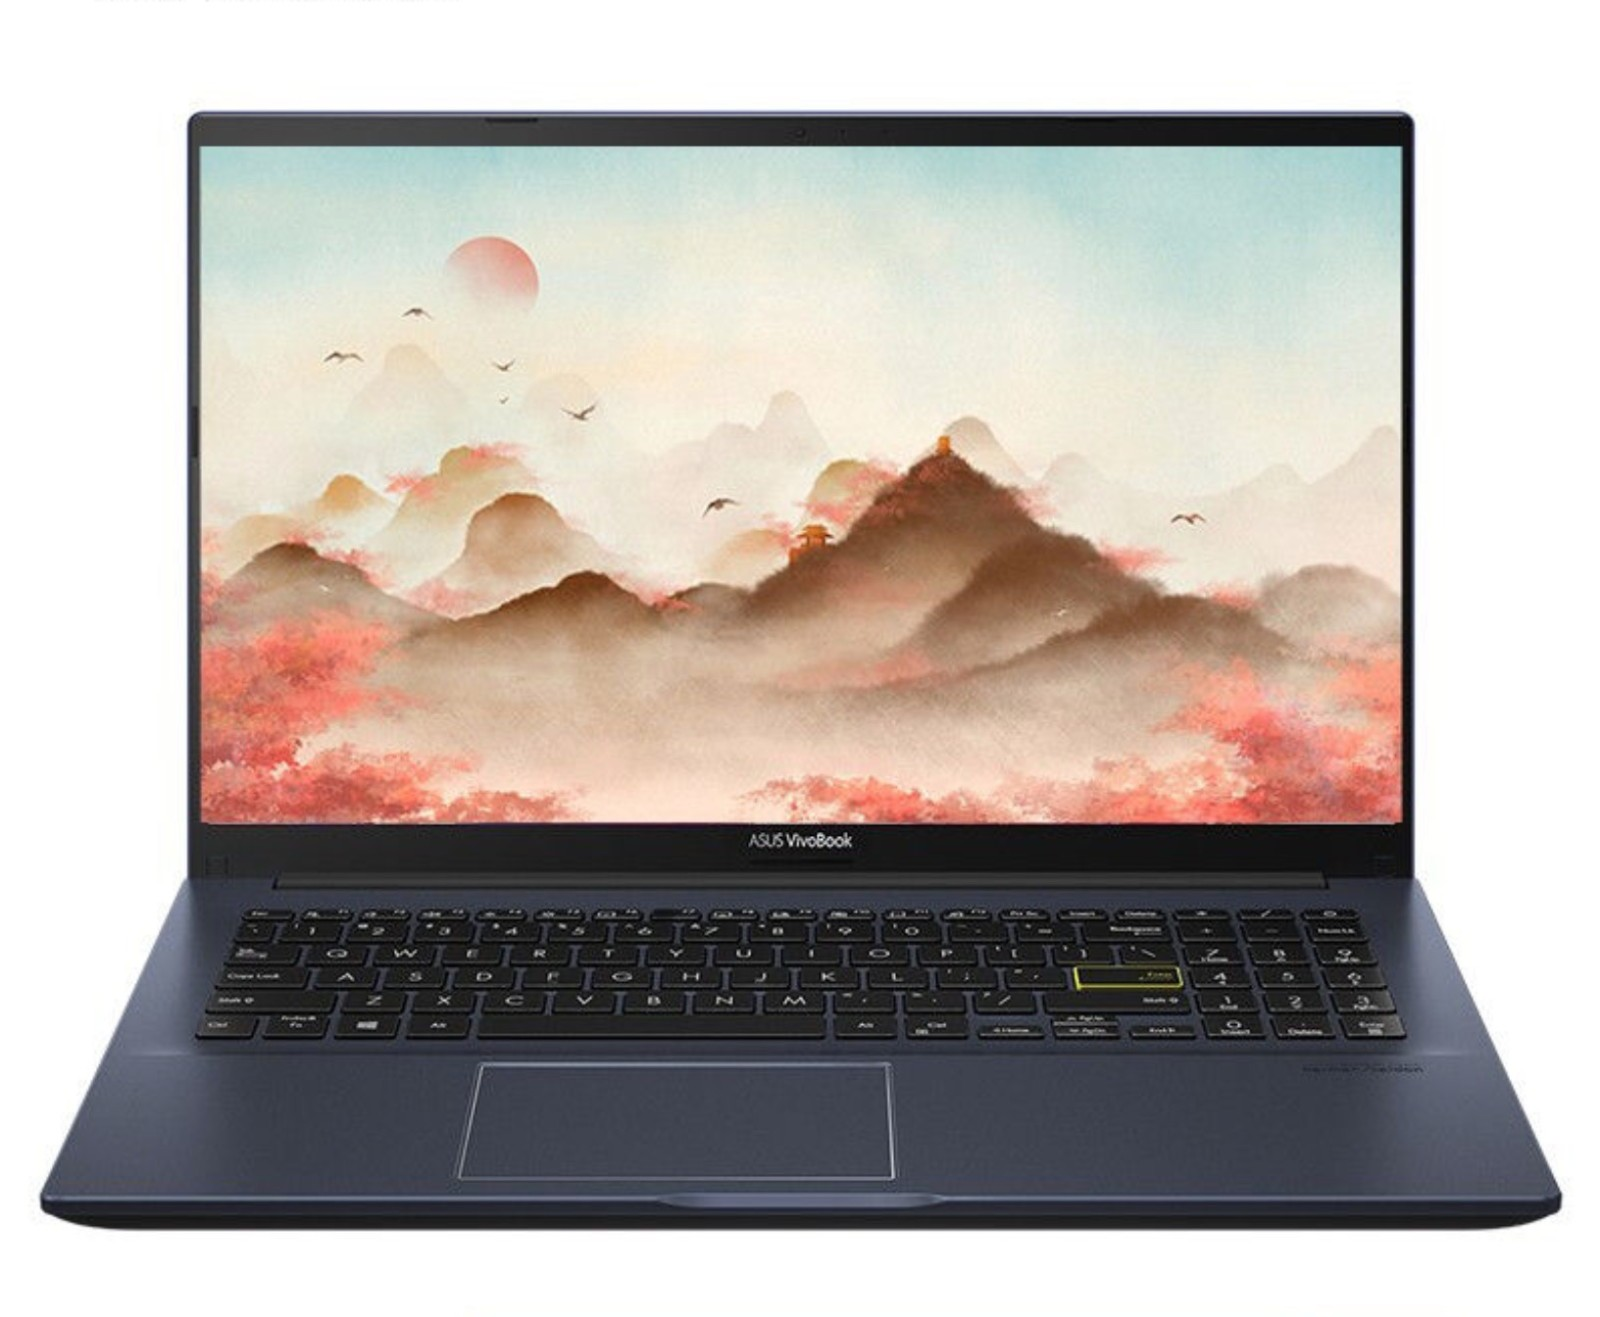 ASUS 华硕 VivoBook15 X 2021款 15.6英寸 商务本 耀夜黑(酷睿i7-1165G7、MX330、16GB、512GB SSD、1080P、IPS、60Hz、V5050EA1165)